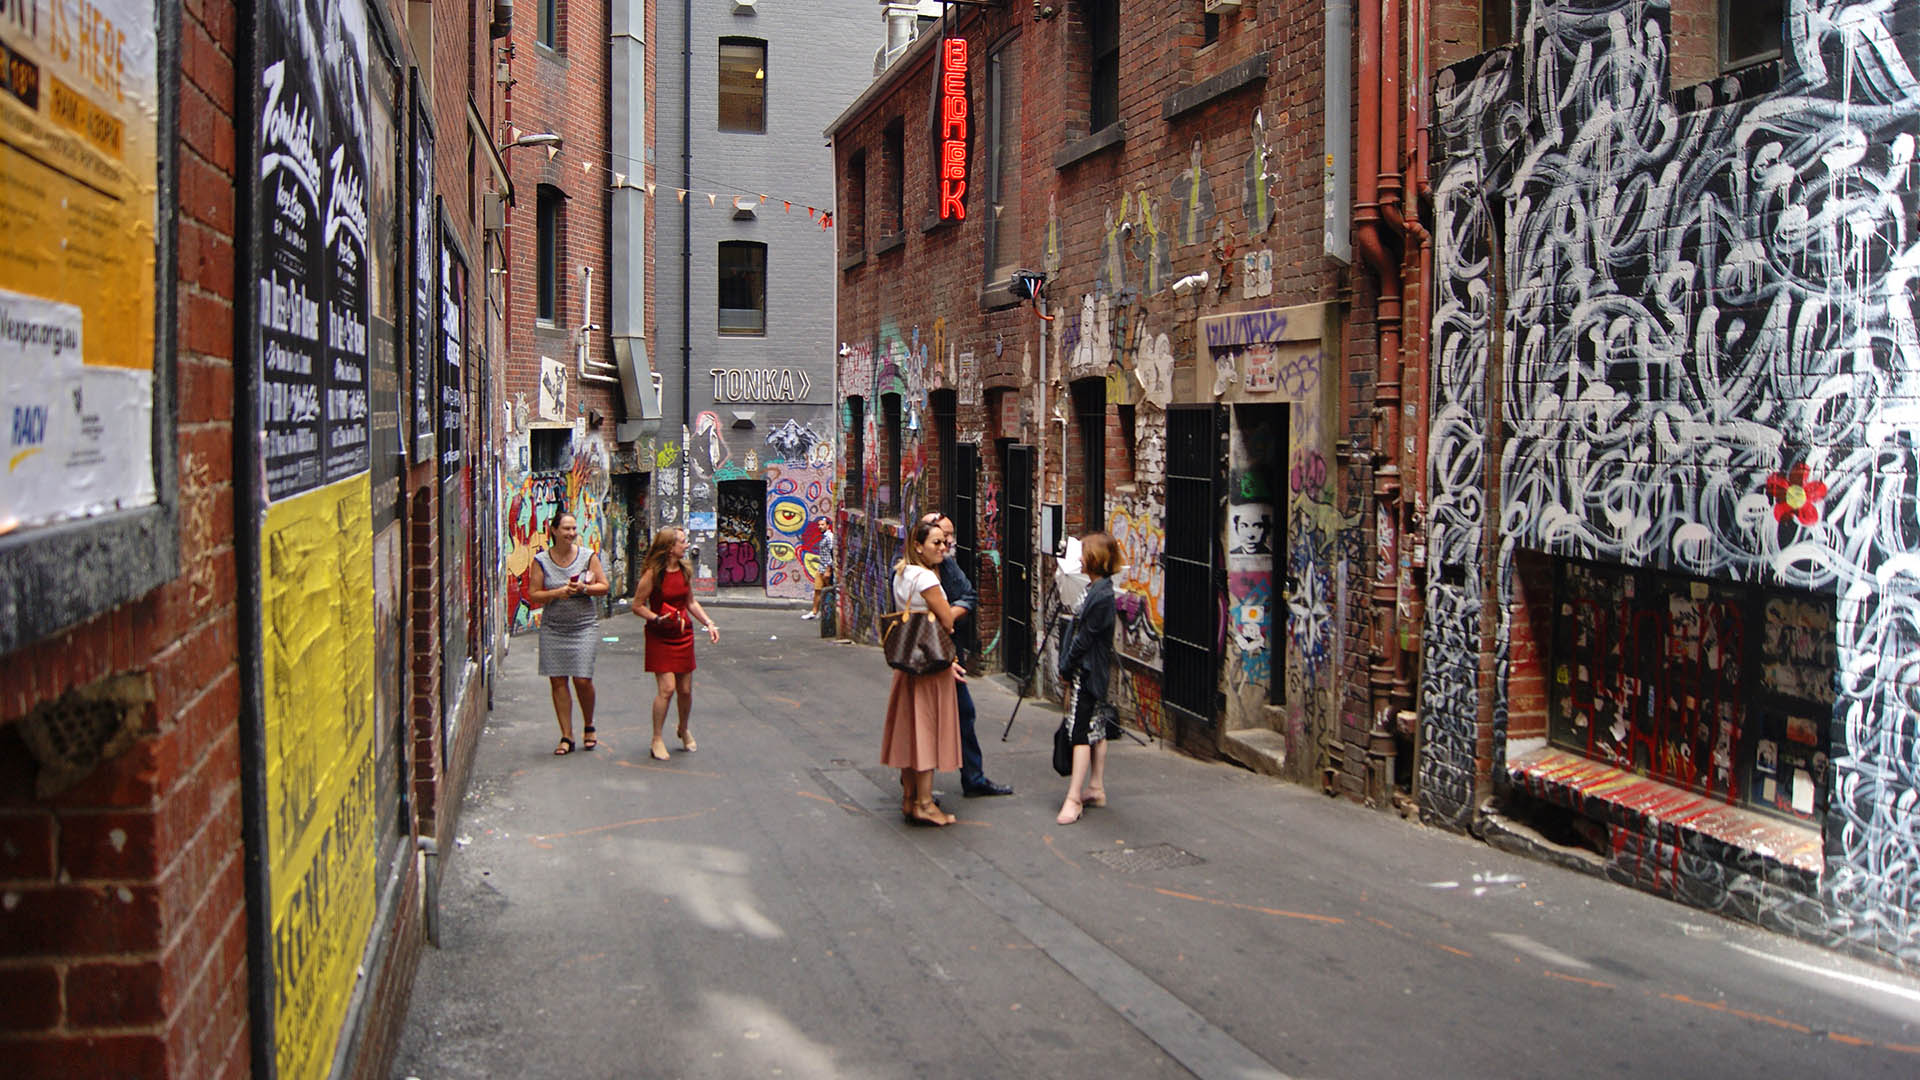 People milling about in Melbourne laneway